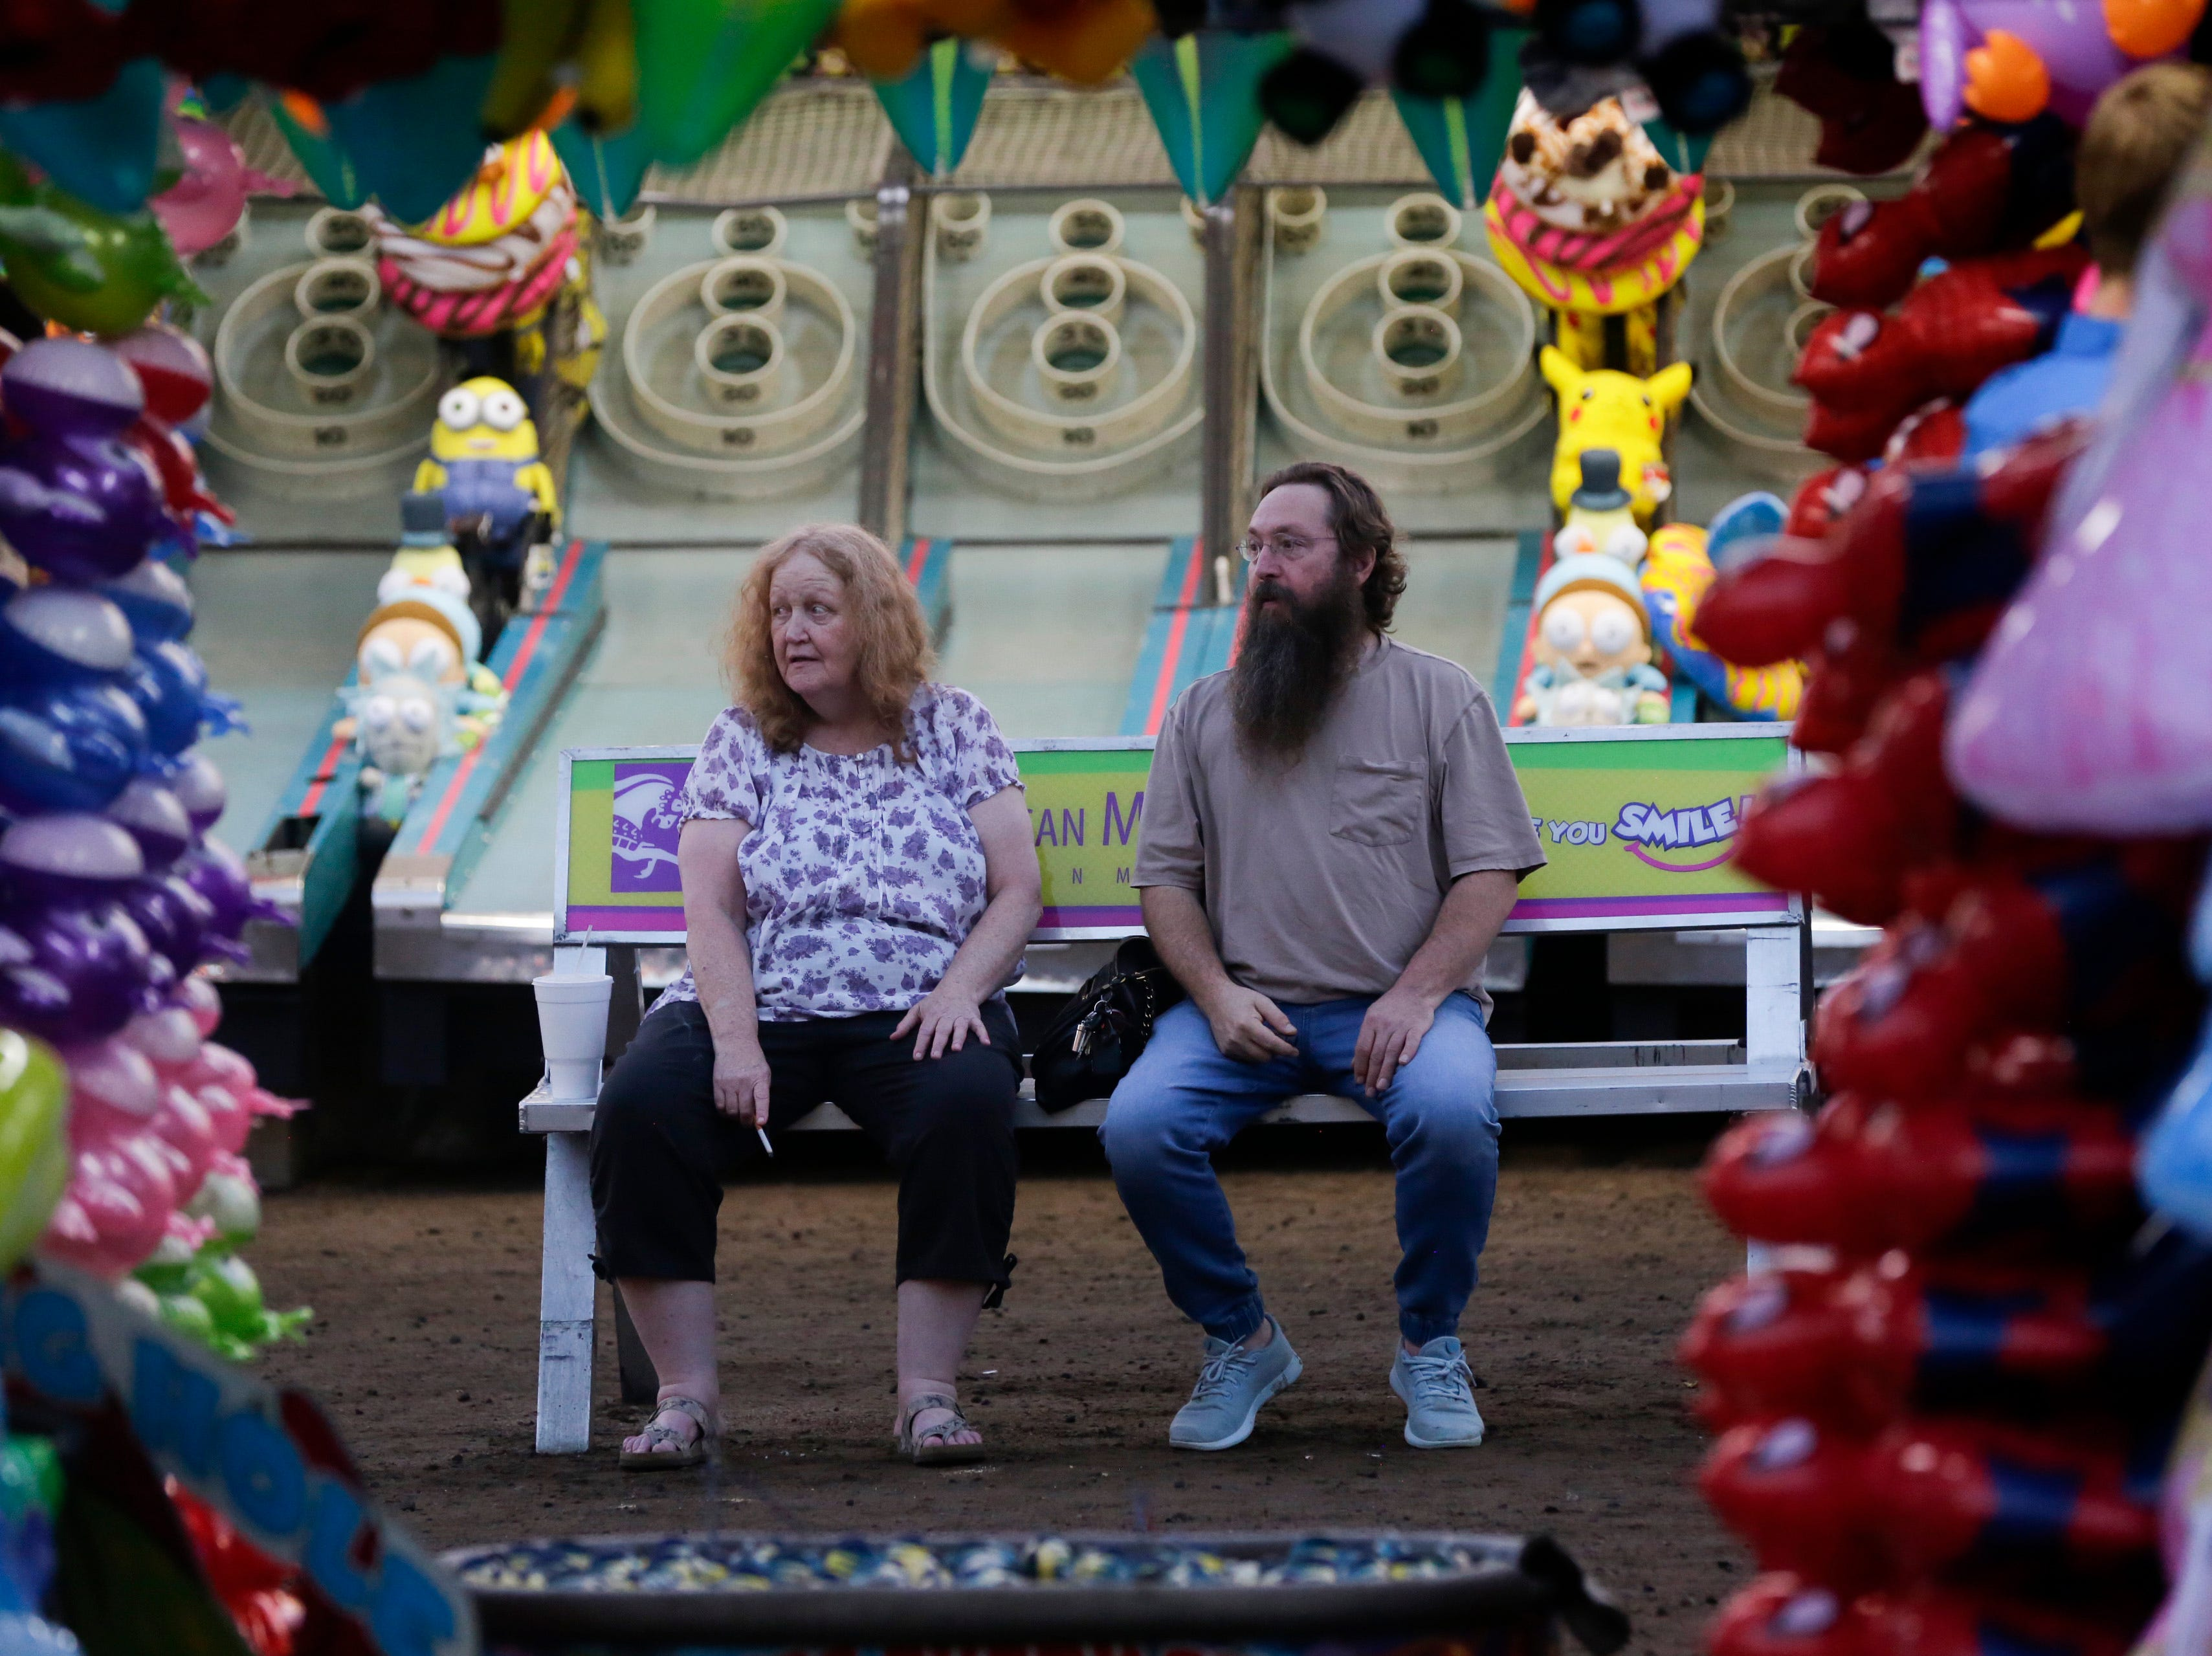 Lynn and Craig Luckeroth take in the sights and sounds at the Central Wisconsin State Fair in Marshfield Wednesday, August 22, 2018.